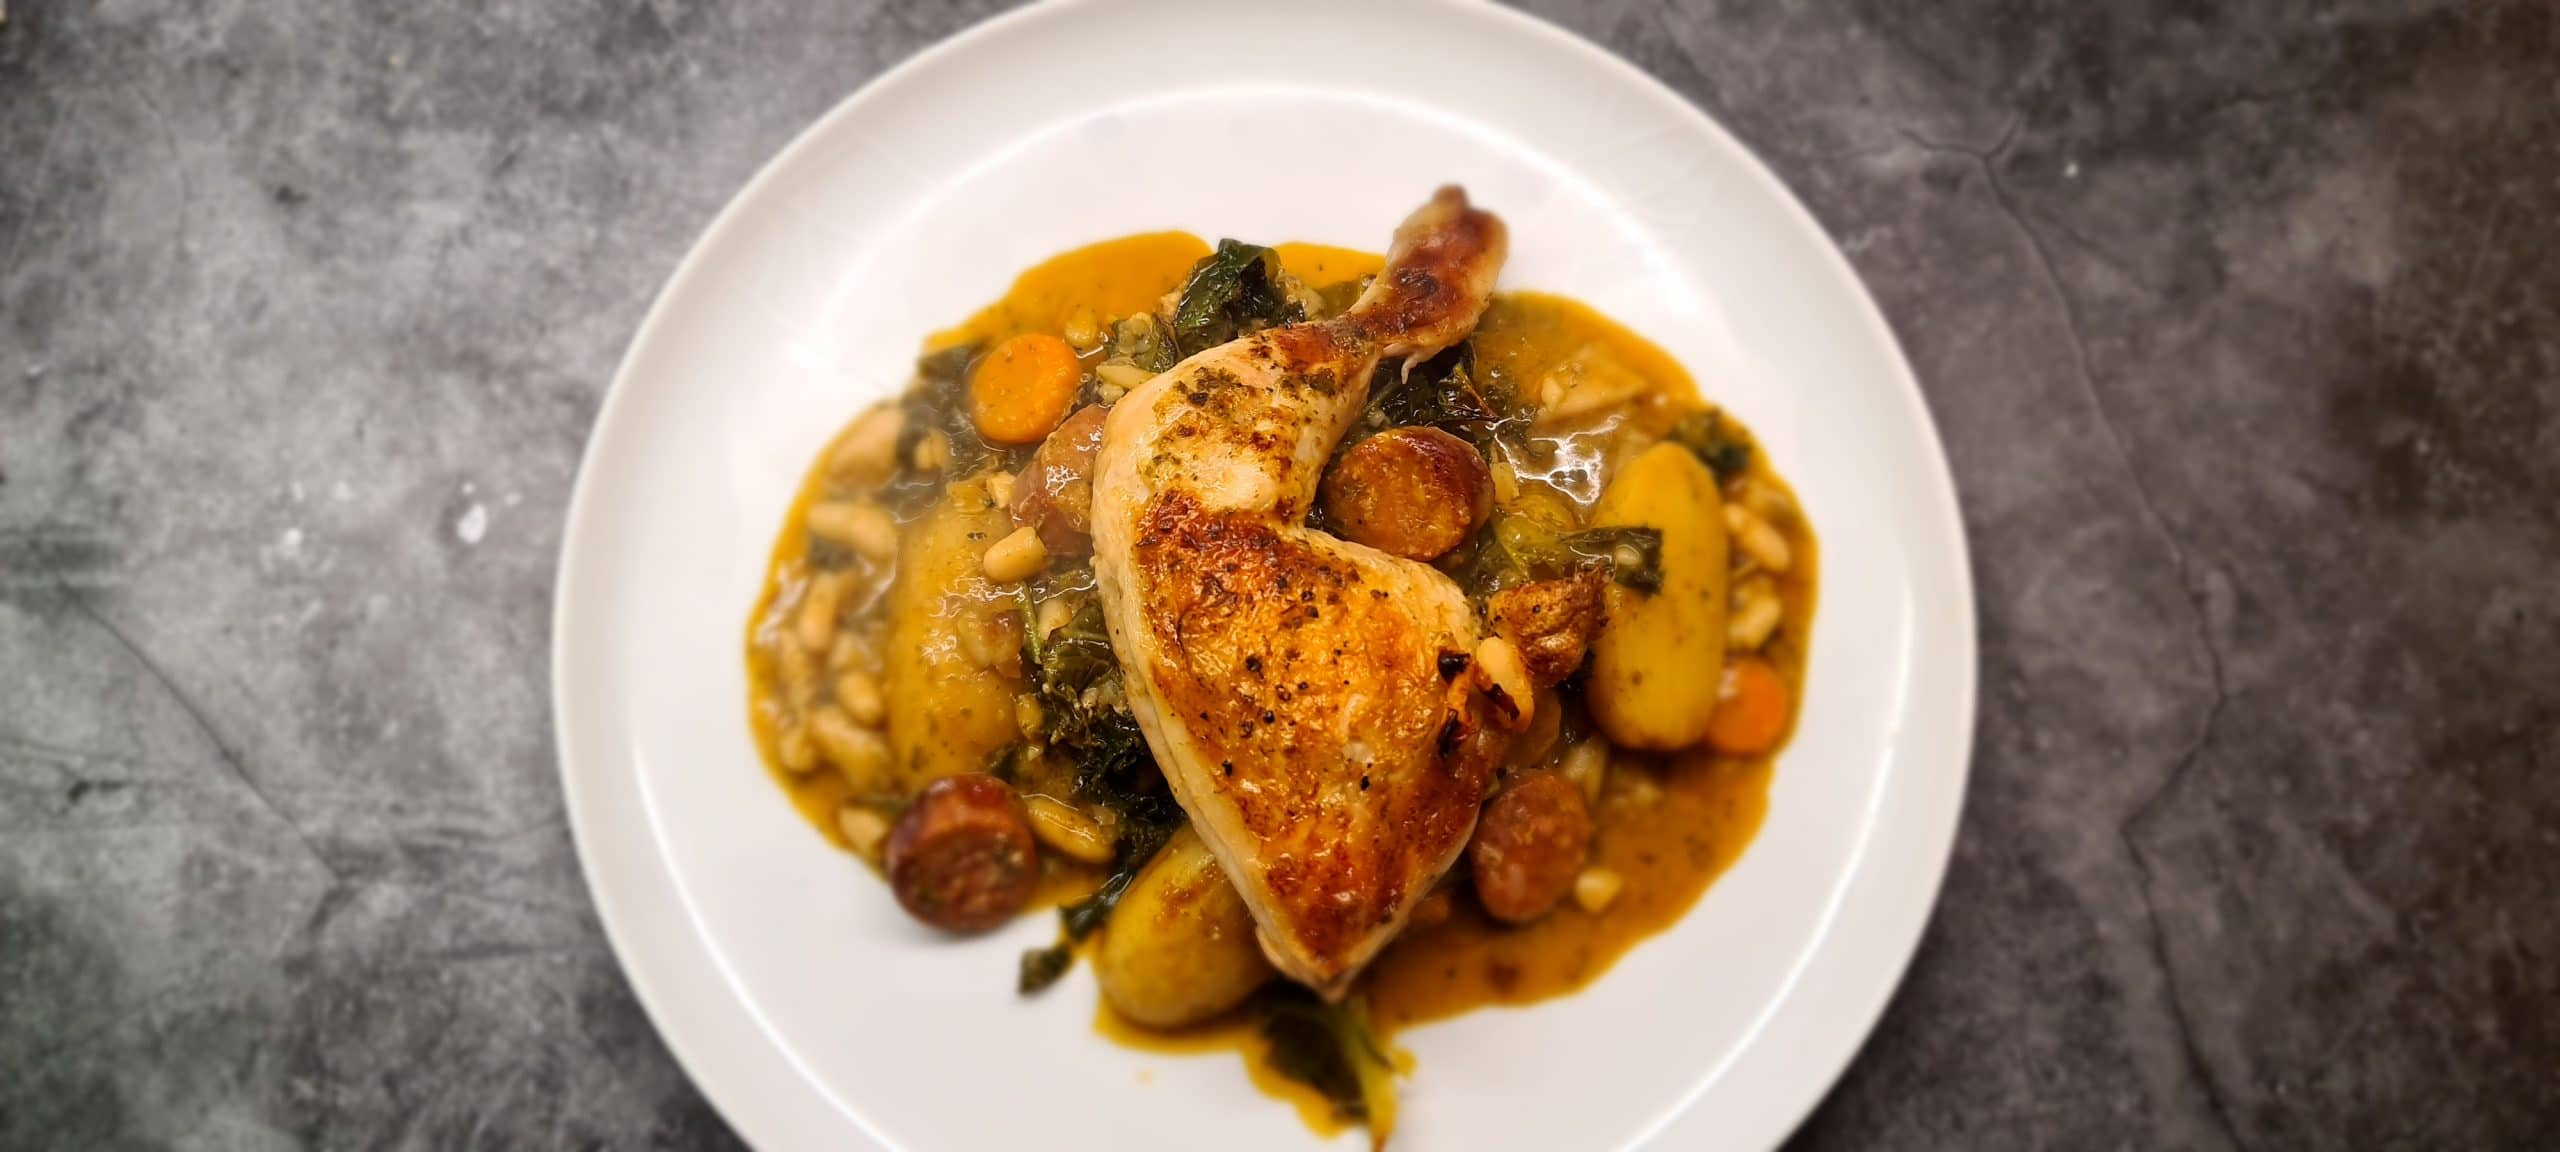 You are currently viewing Baked Chicken Leg with Chorizo, Beans, Pesto and Kale